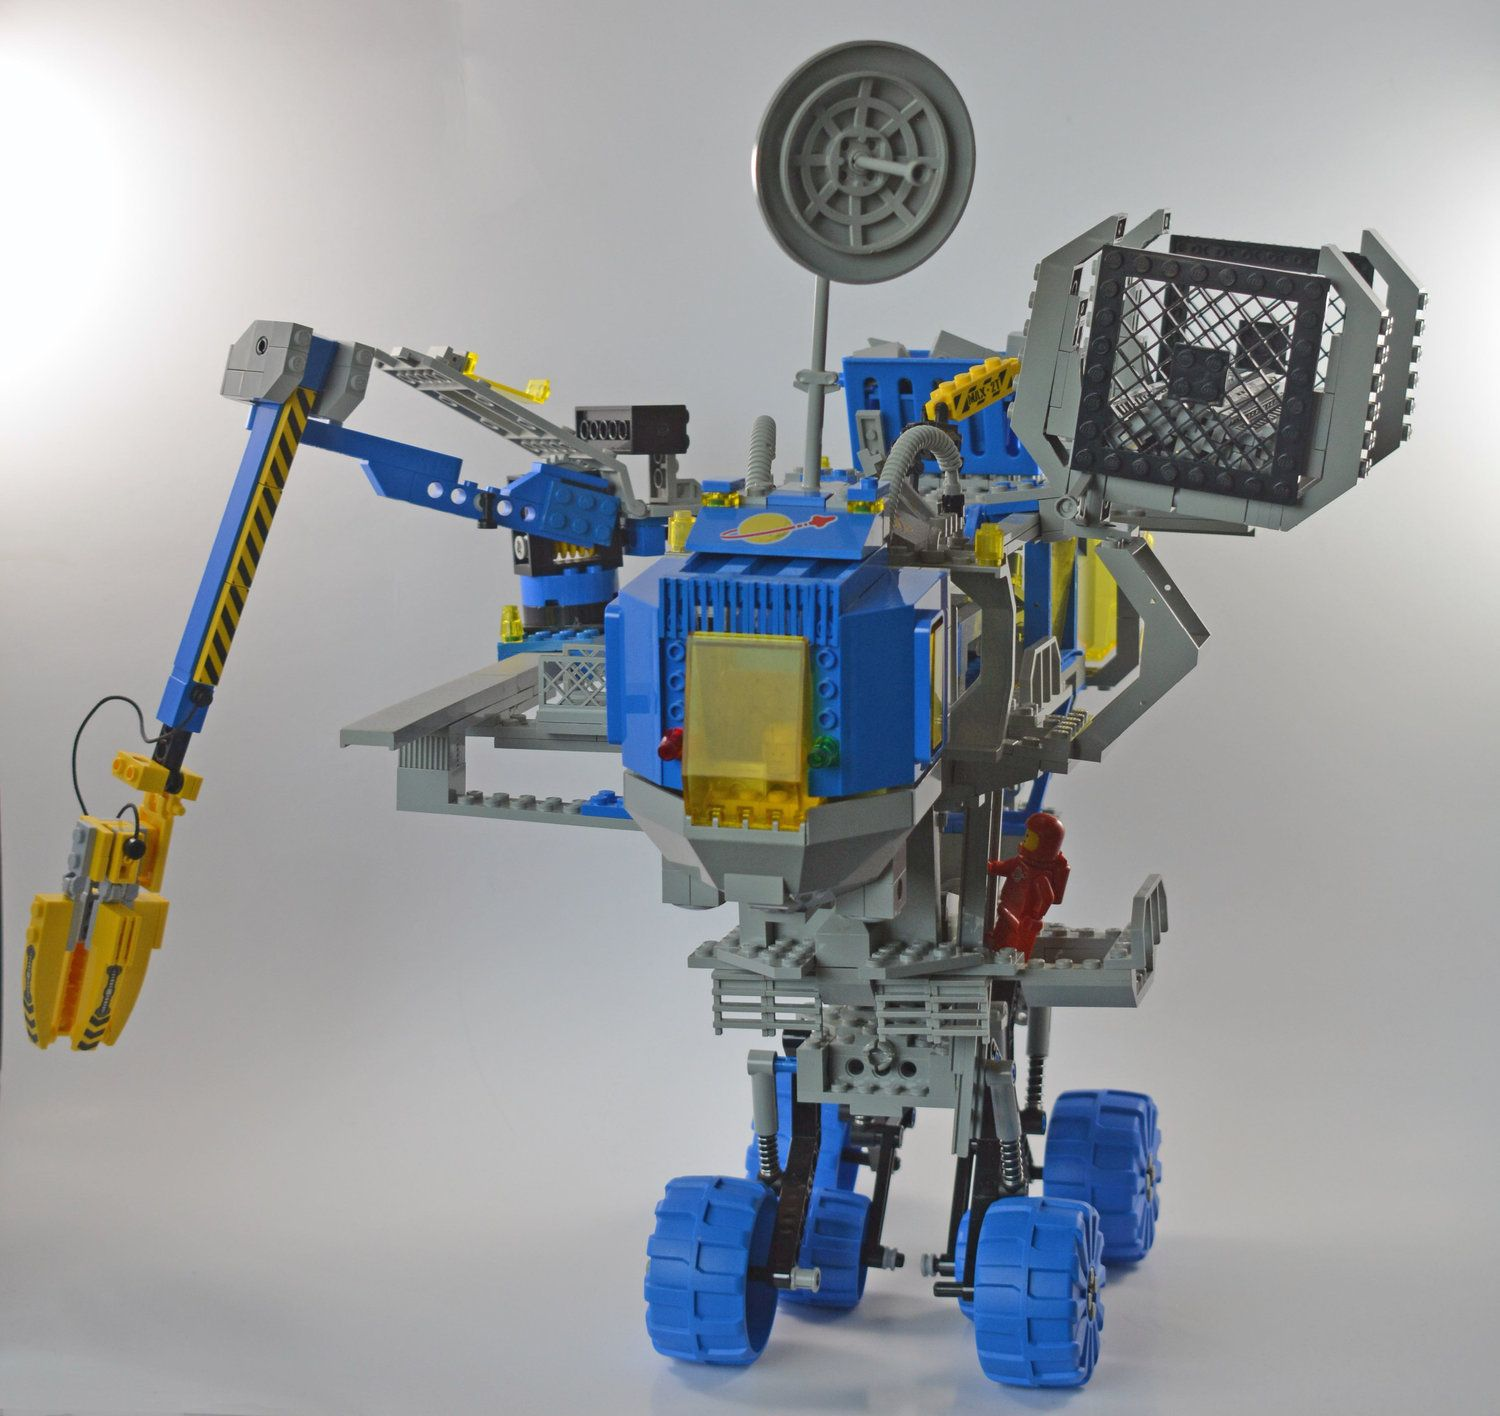 BrickNerd - Your place for all things LEGO and the LEGO